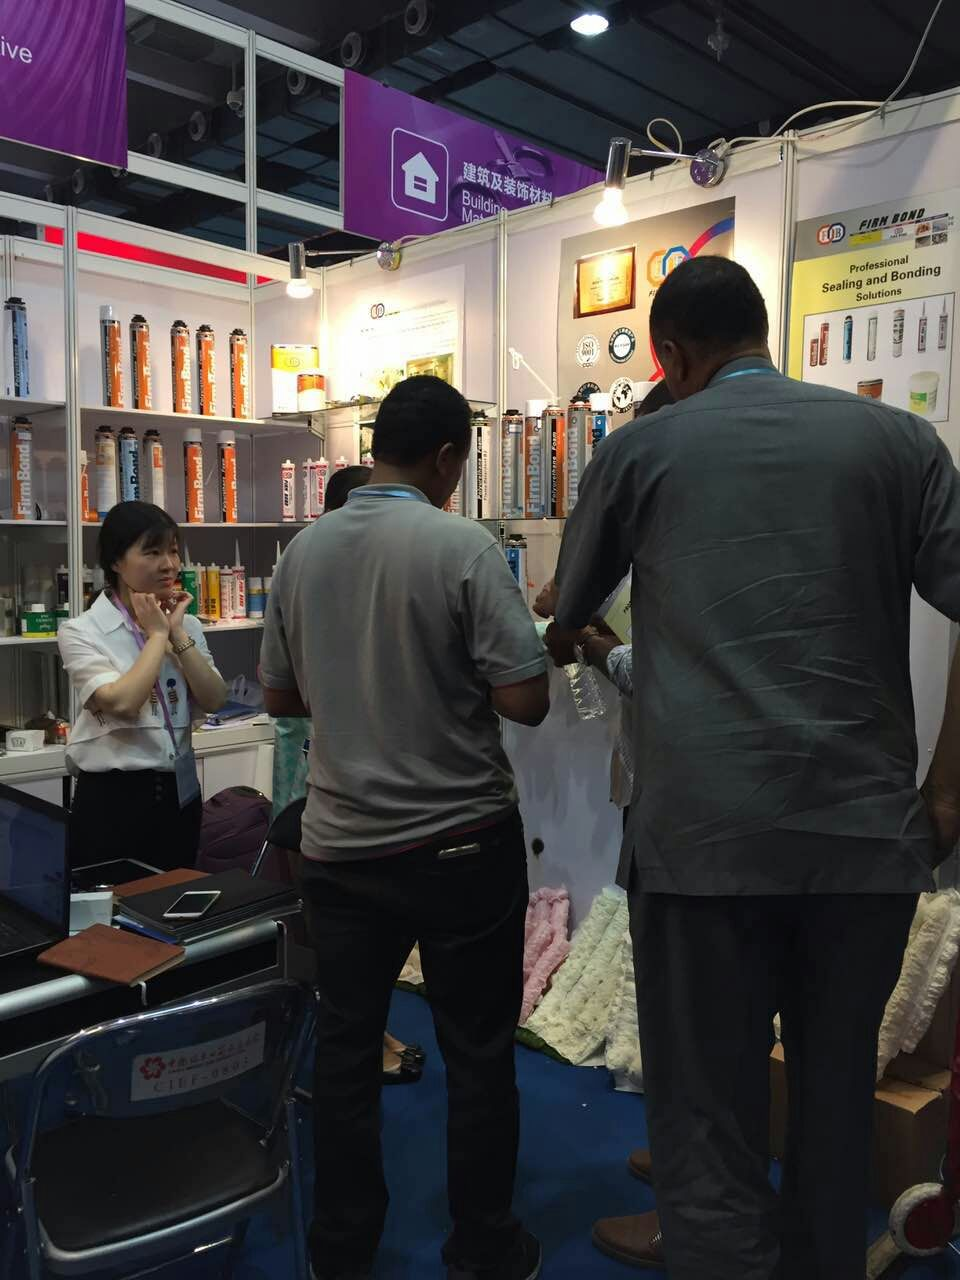 Customers Inquirying at FIRM BOND booth